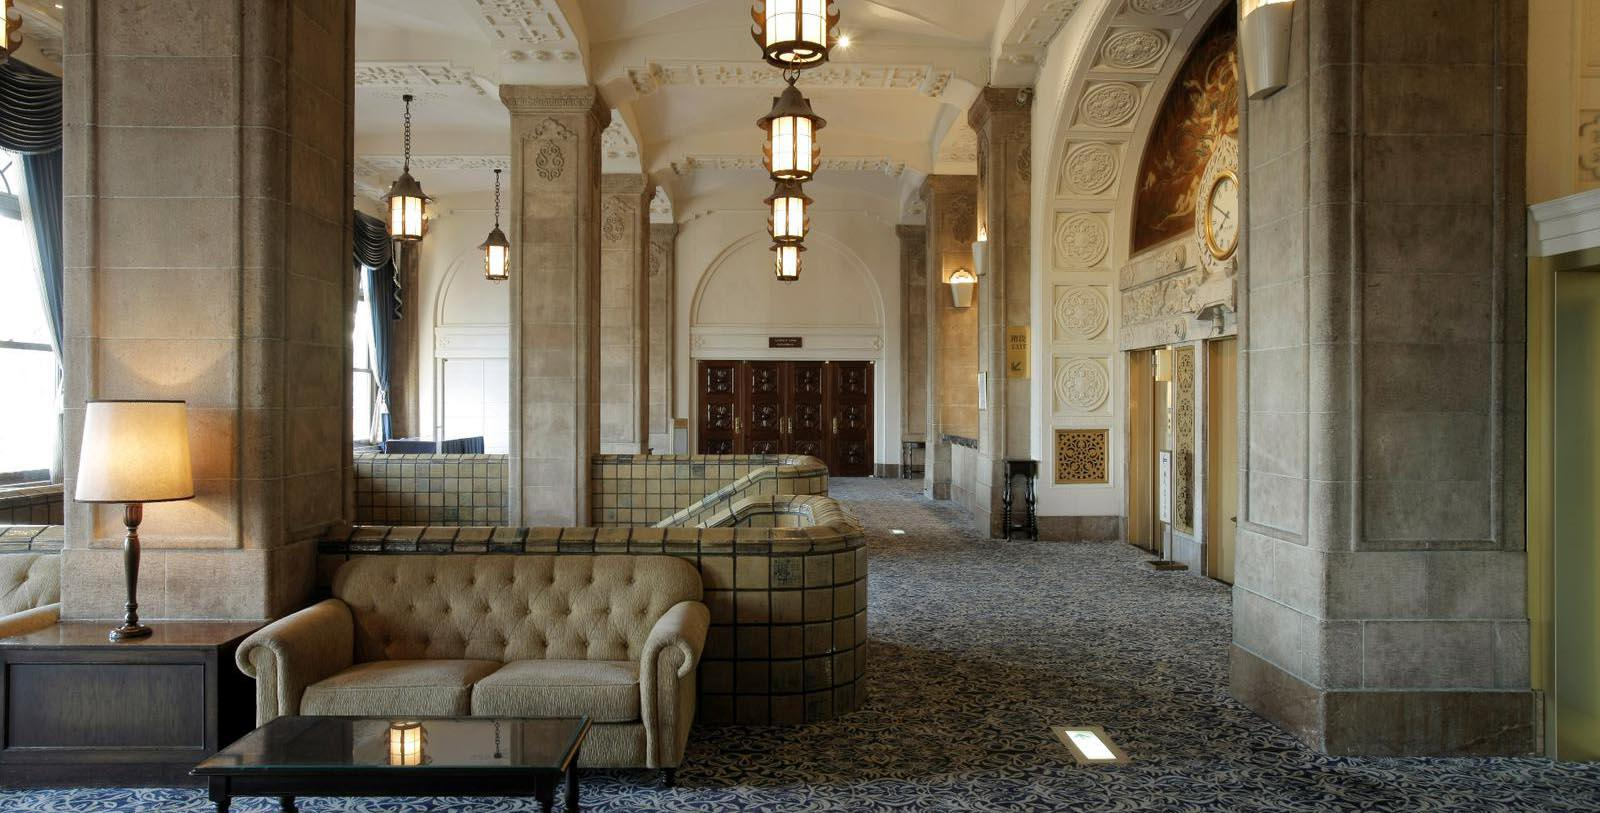 Image of Lobby Seating, Hotel New Grand, Yokohama, Japan, 1927, Member of Historic Hotels Worldwide, Discover